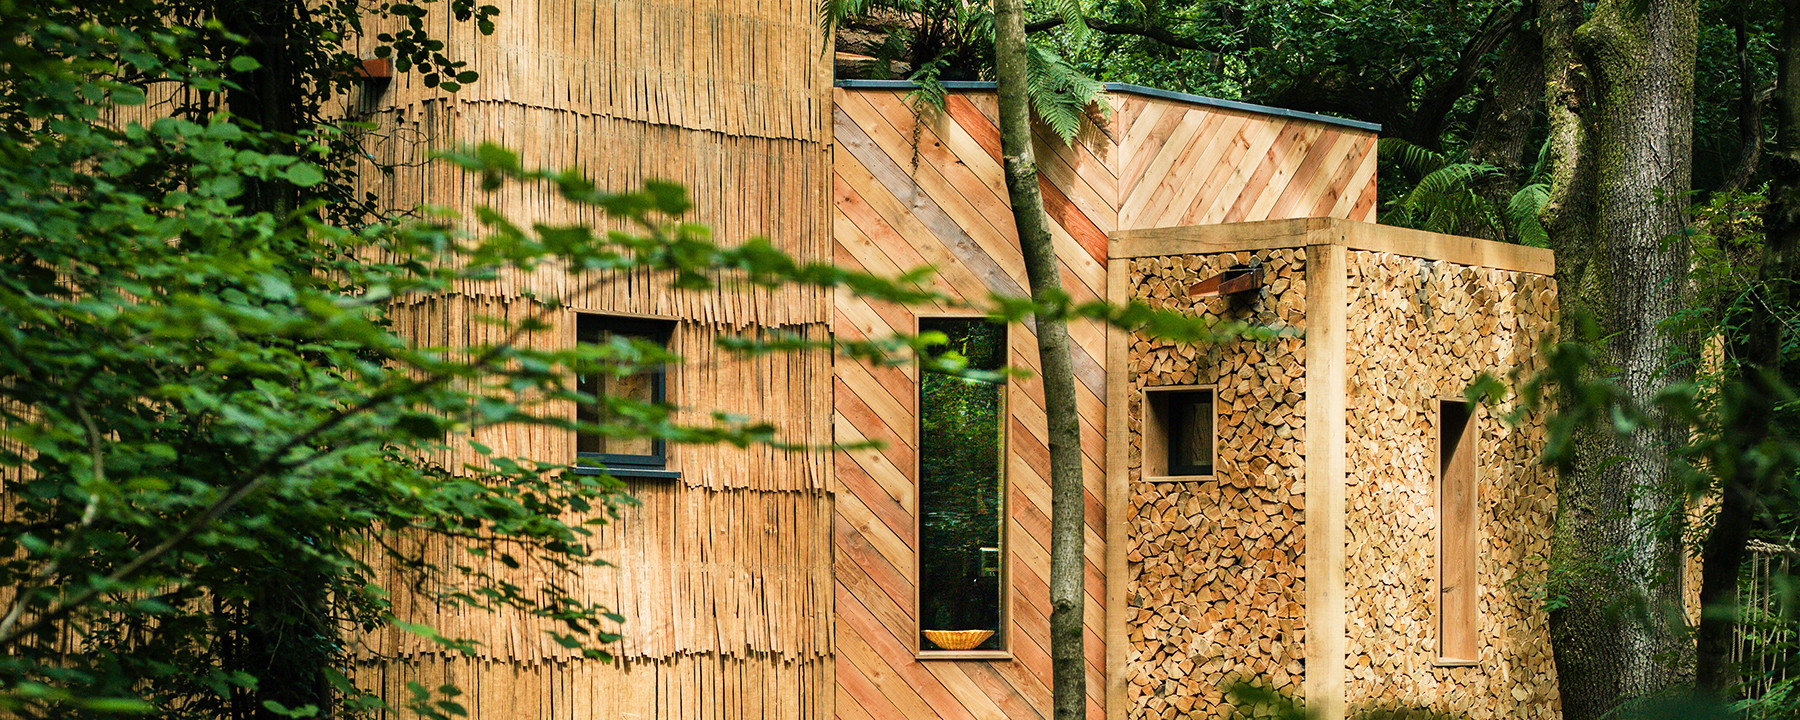 woodman-treehouse-west-dorset-england-guy-mallinson-brownlie-ernst-and-marks-designboom-18001.jpg